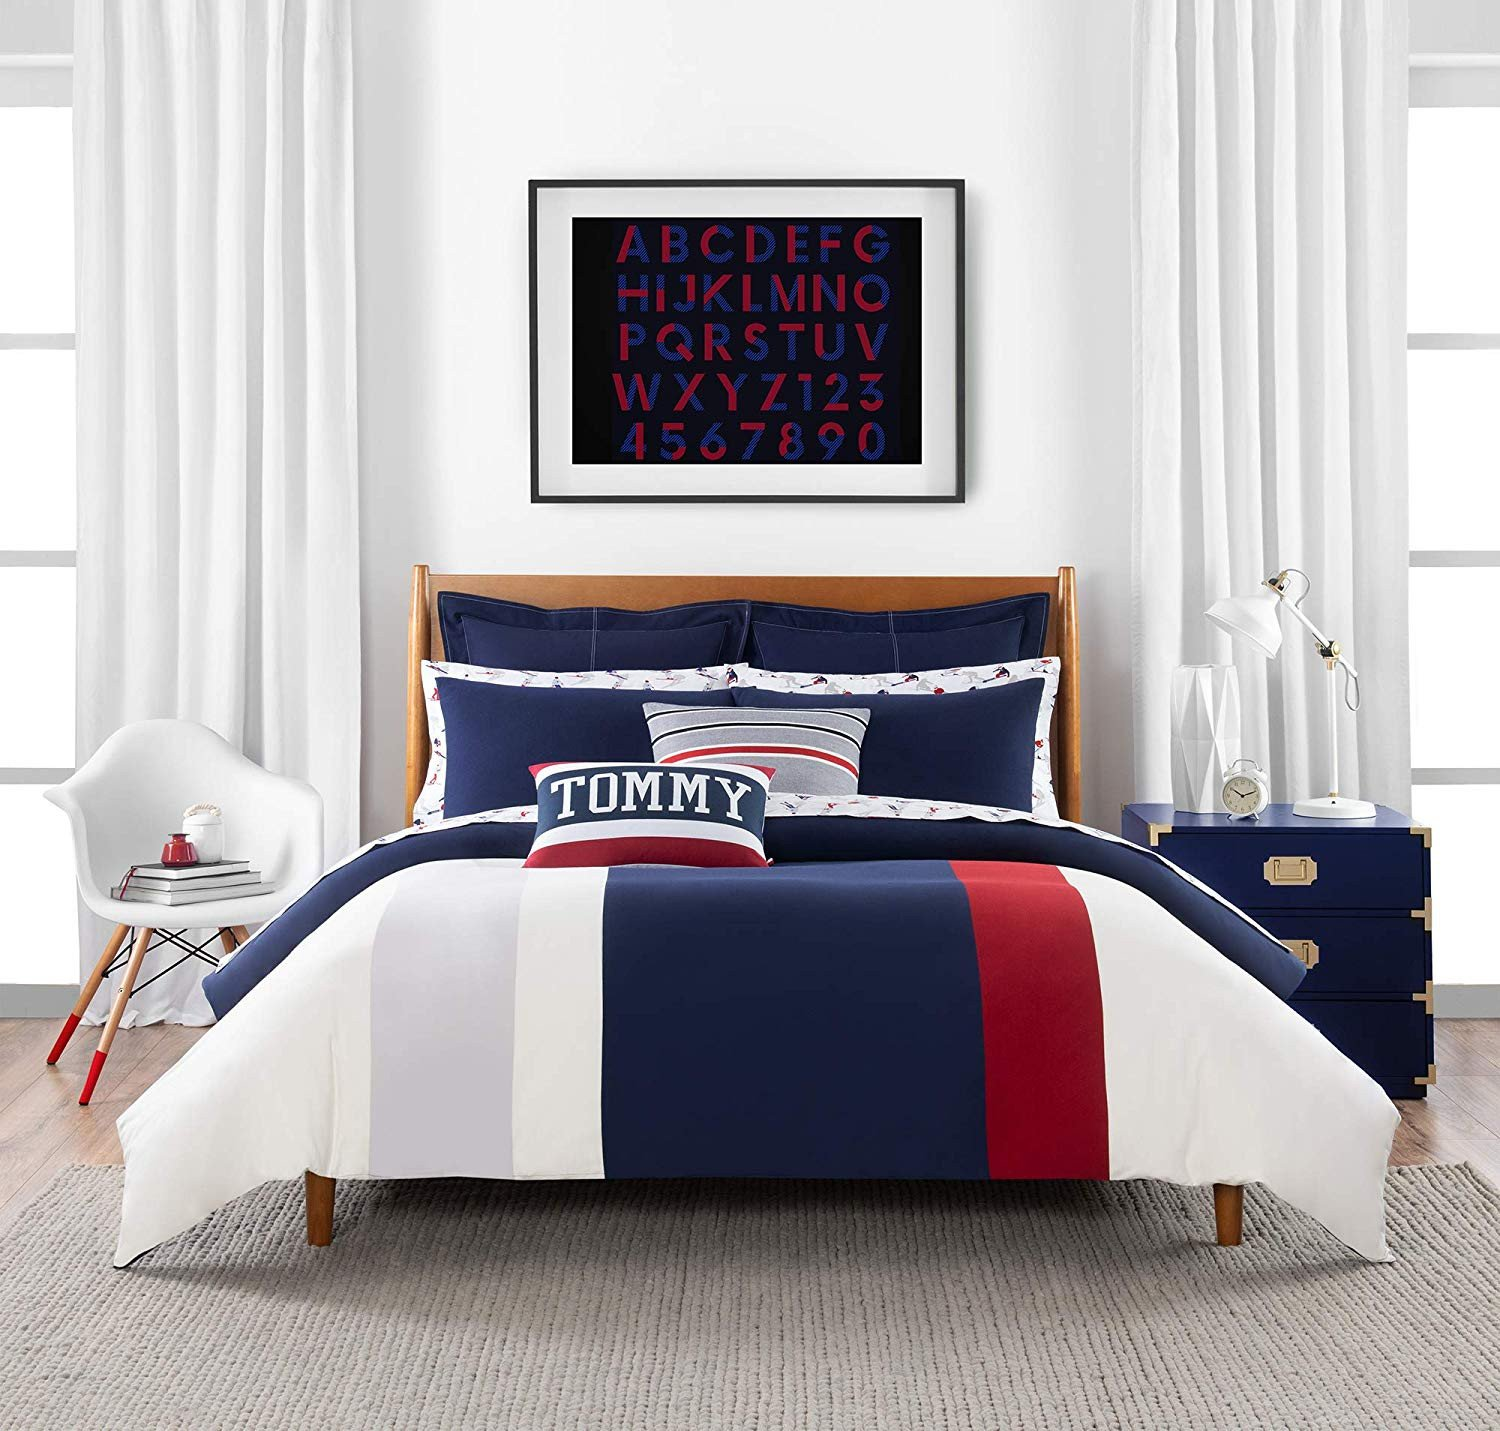 Bedroom Set for Men Luxury Amazon tommy Hilfiger Clash Of 85 Stripe Bedding